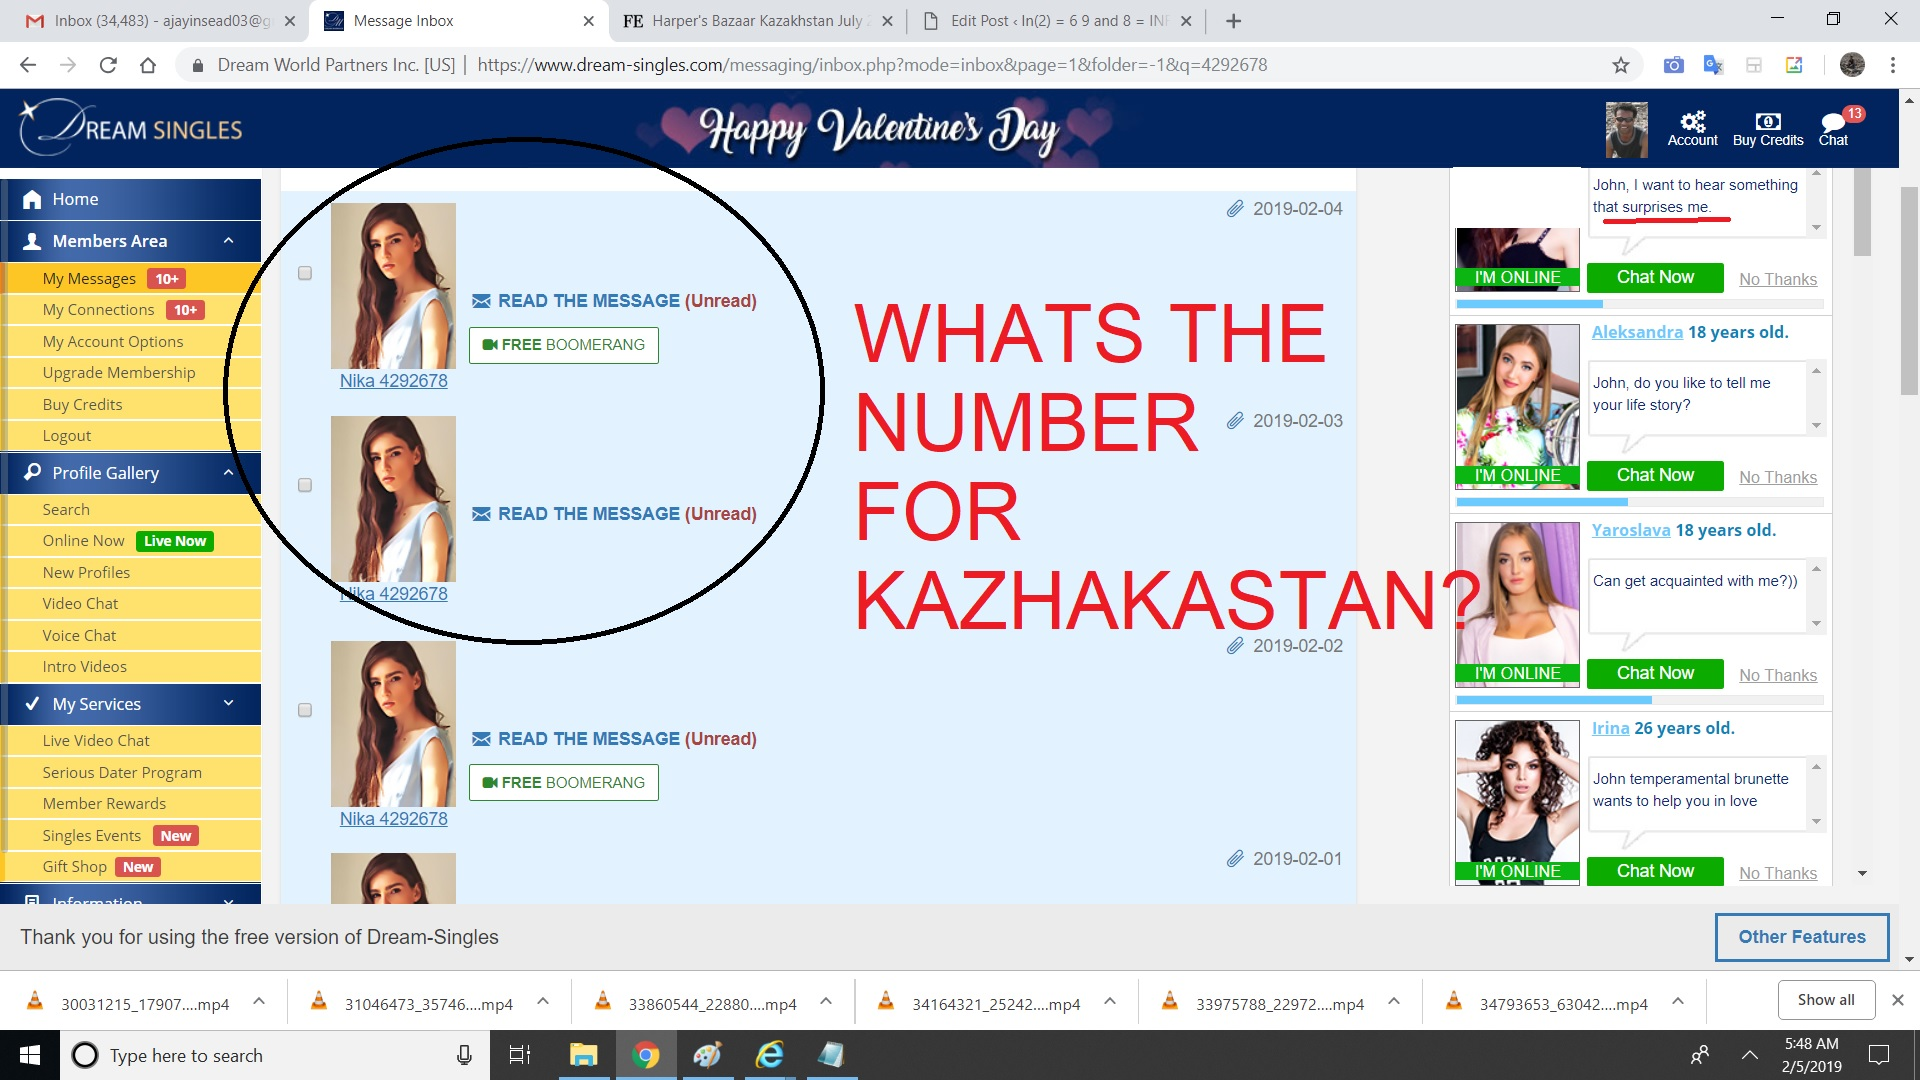 KAZHAKISTAN IS WHAT NUMBER